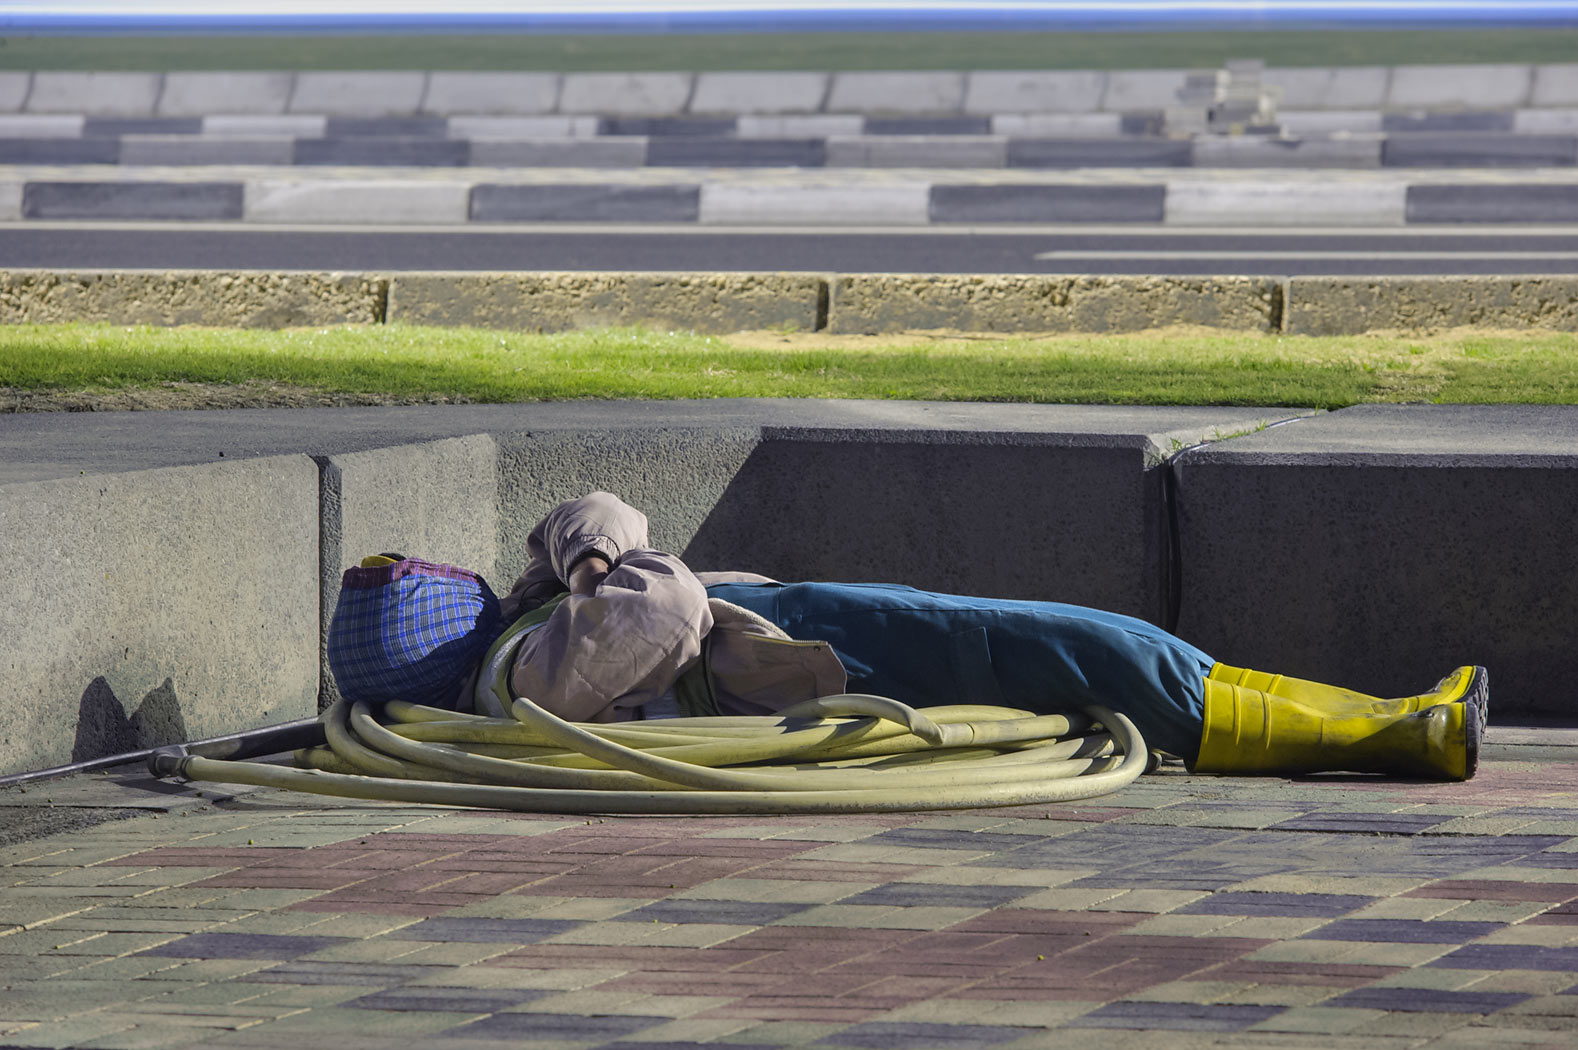 Worker sleeping on water horse on Corniche promenade at morning. Doha, Qatar